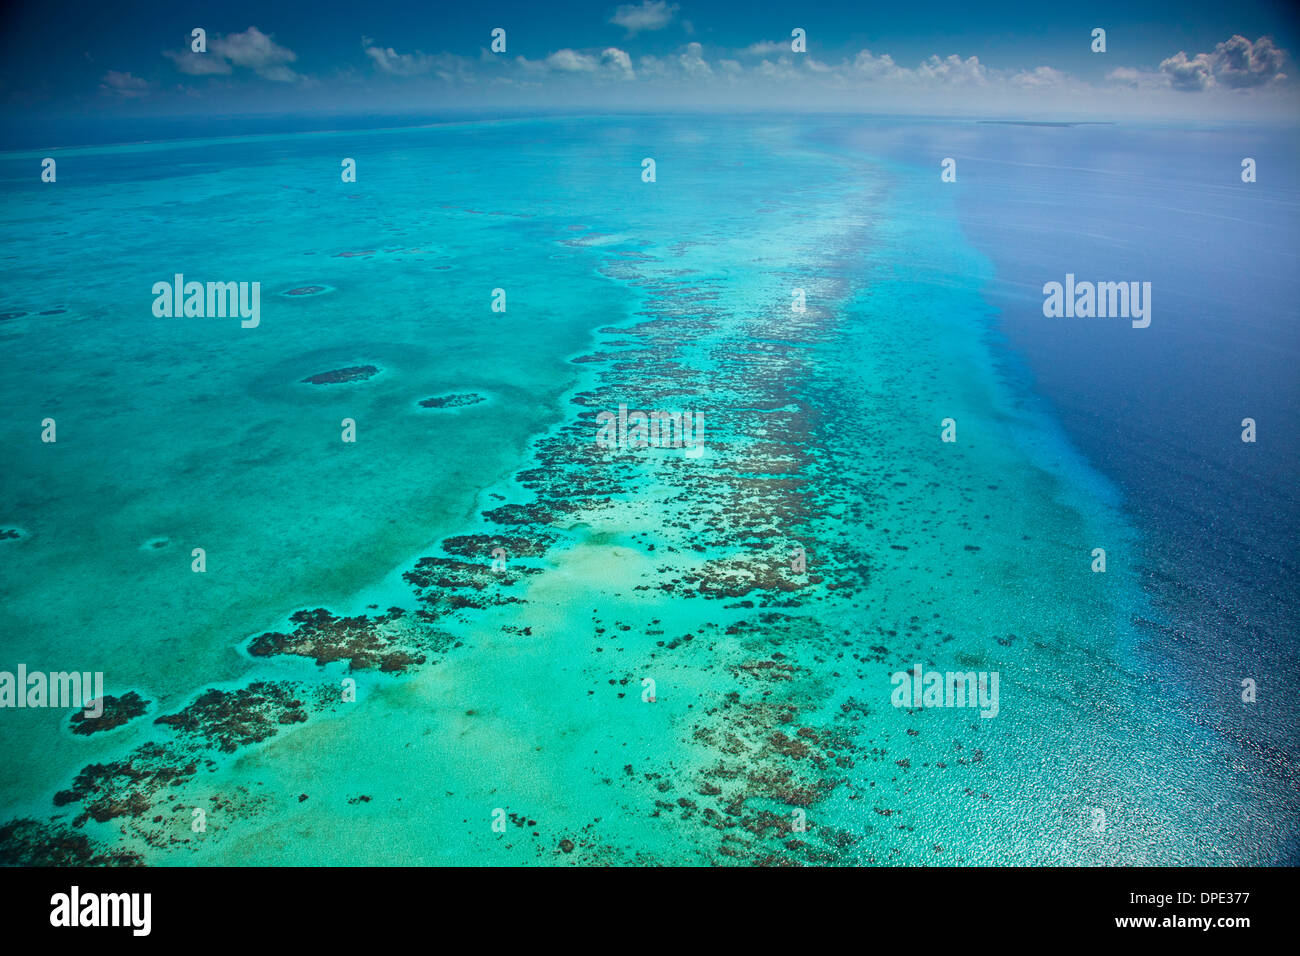 Reef detail Belize Caribbean Sea Meso American Reef Reserve Lighthouse Reef Atoll Largest reef in Western Hemisphere - Stock Image